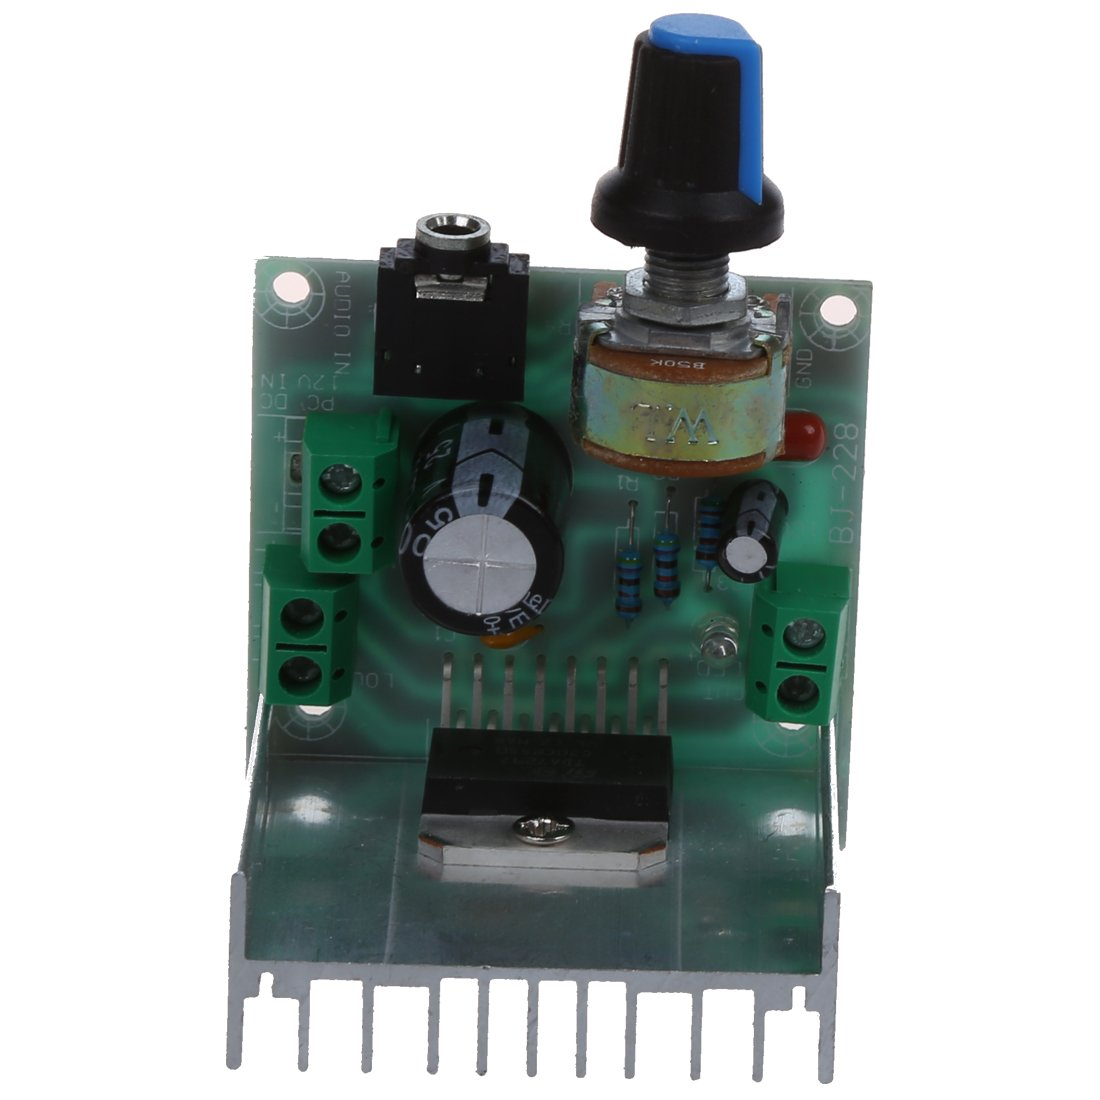 Tda7297 Rev A Low Noise Audio Amplifier Board 2x15w Mp3 Player Circuit Schematic Diagrams Electronics